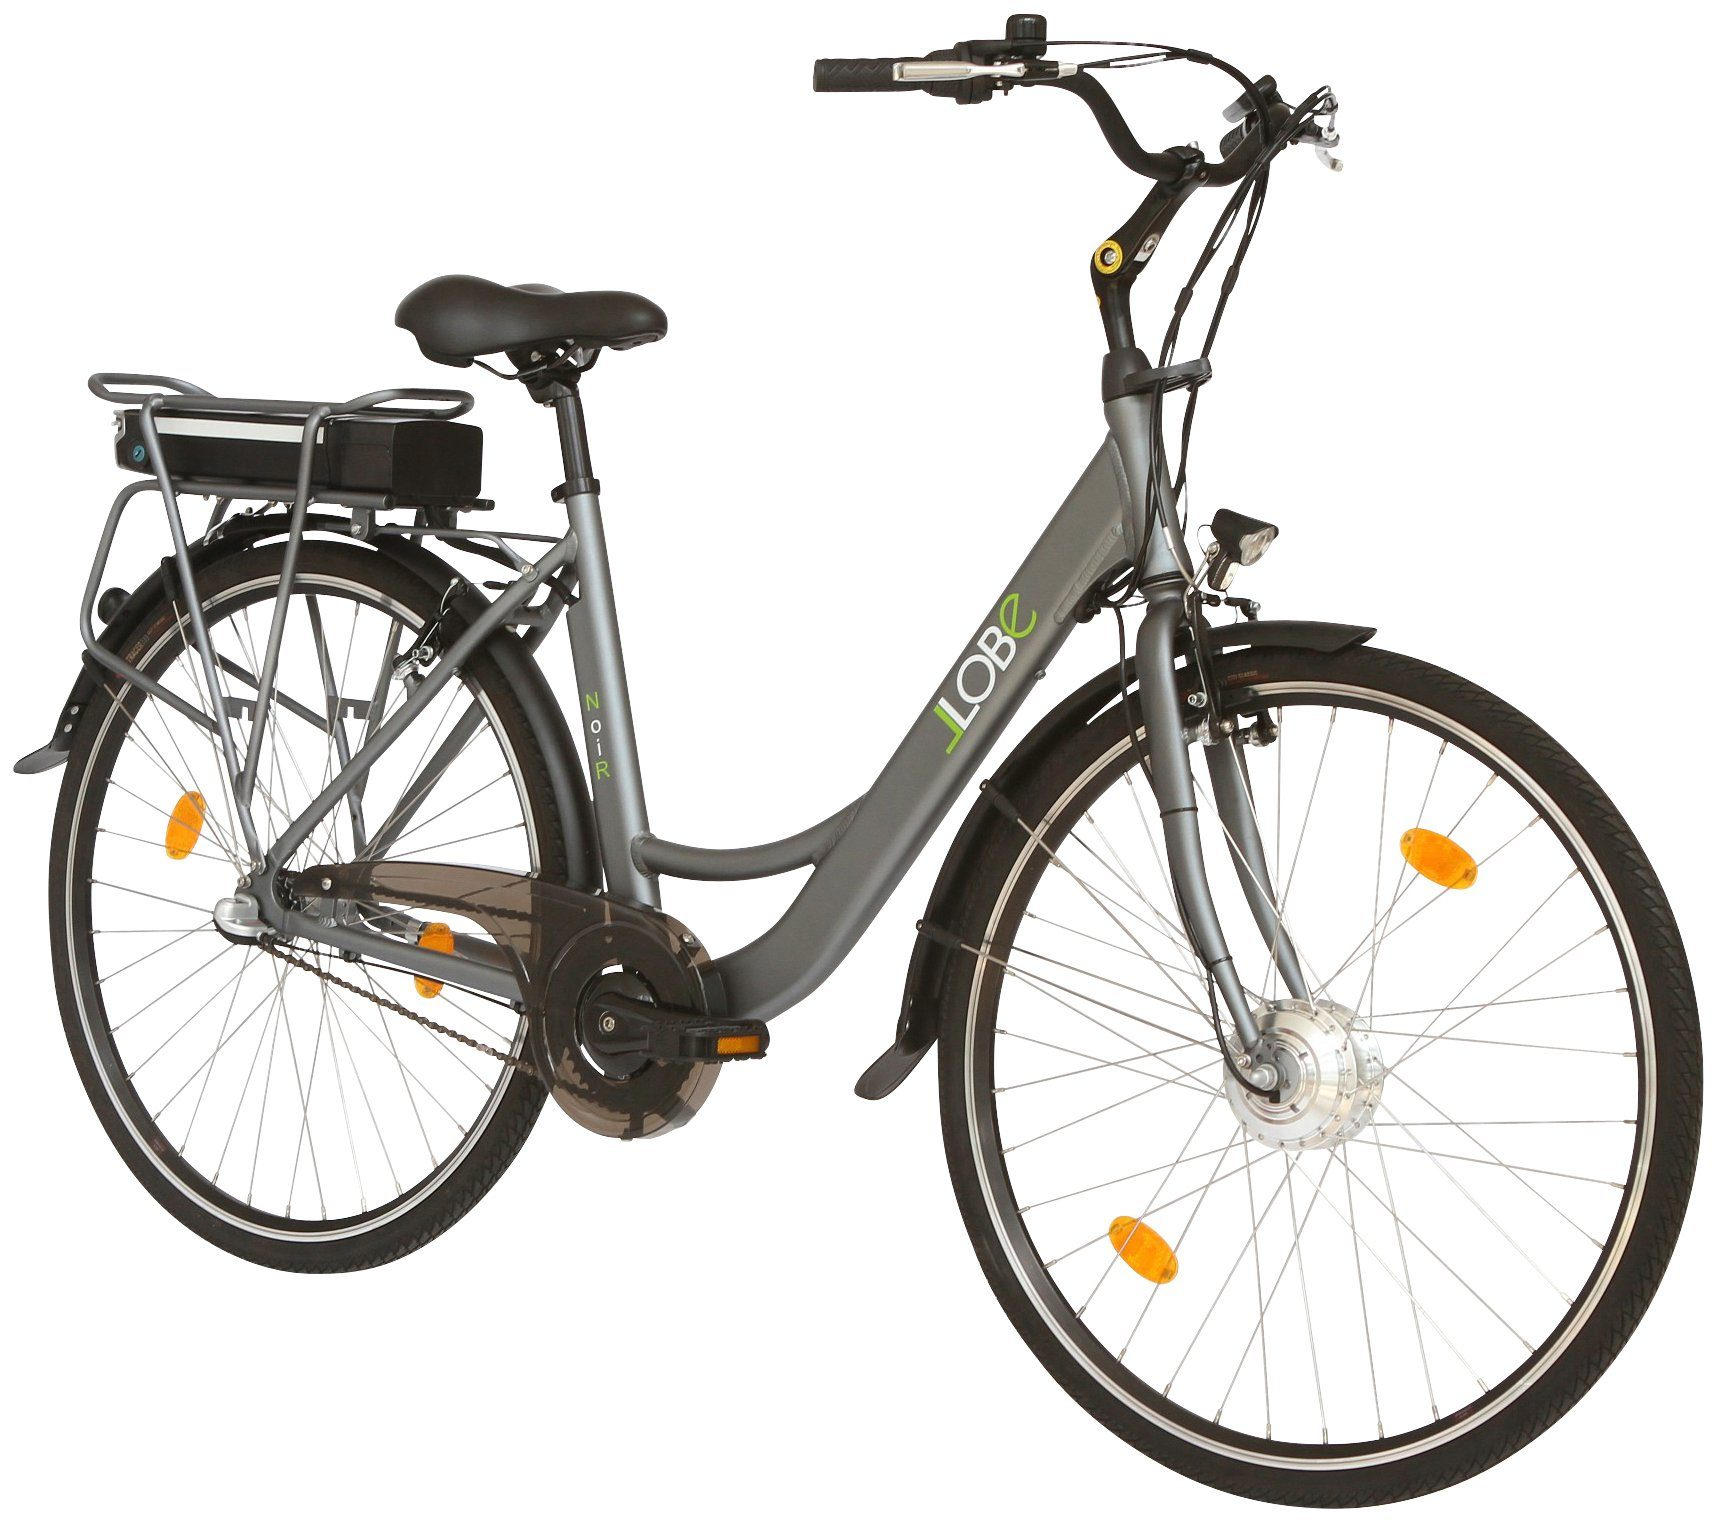 LLOBE E-Bike City Damen »Noir«, 28 Zoll, 3 Gang, 360 Wh